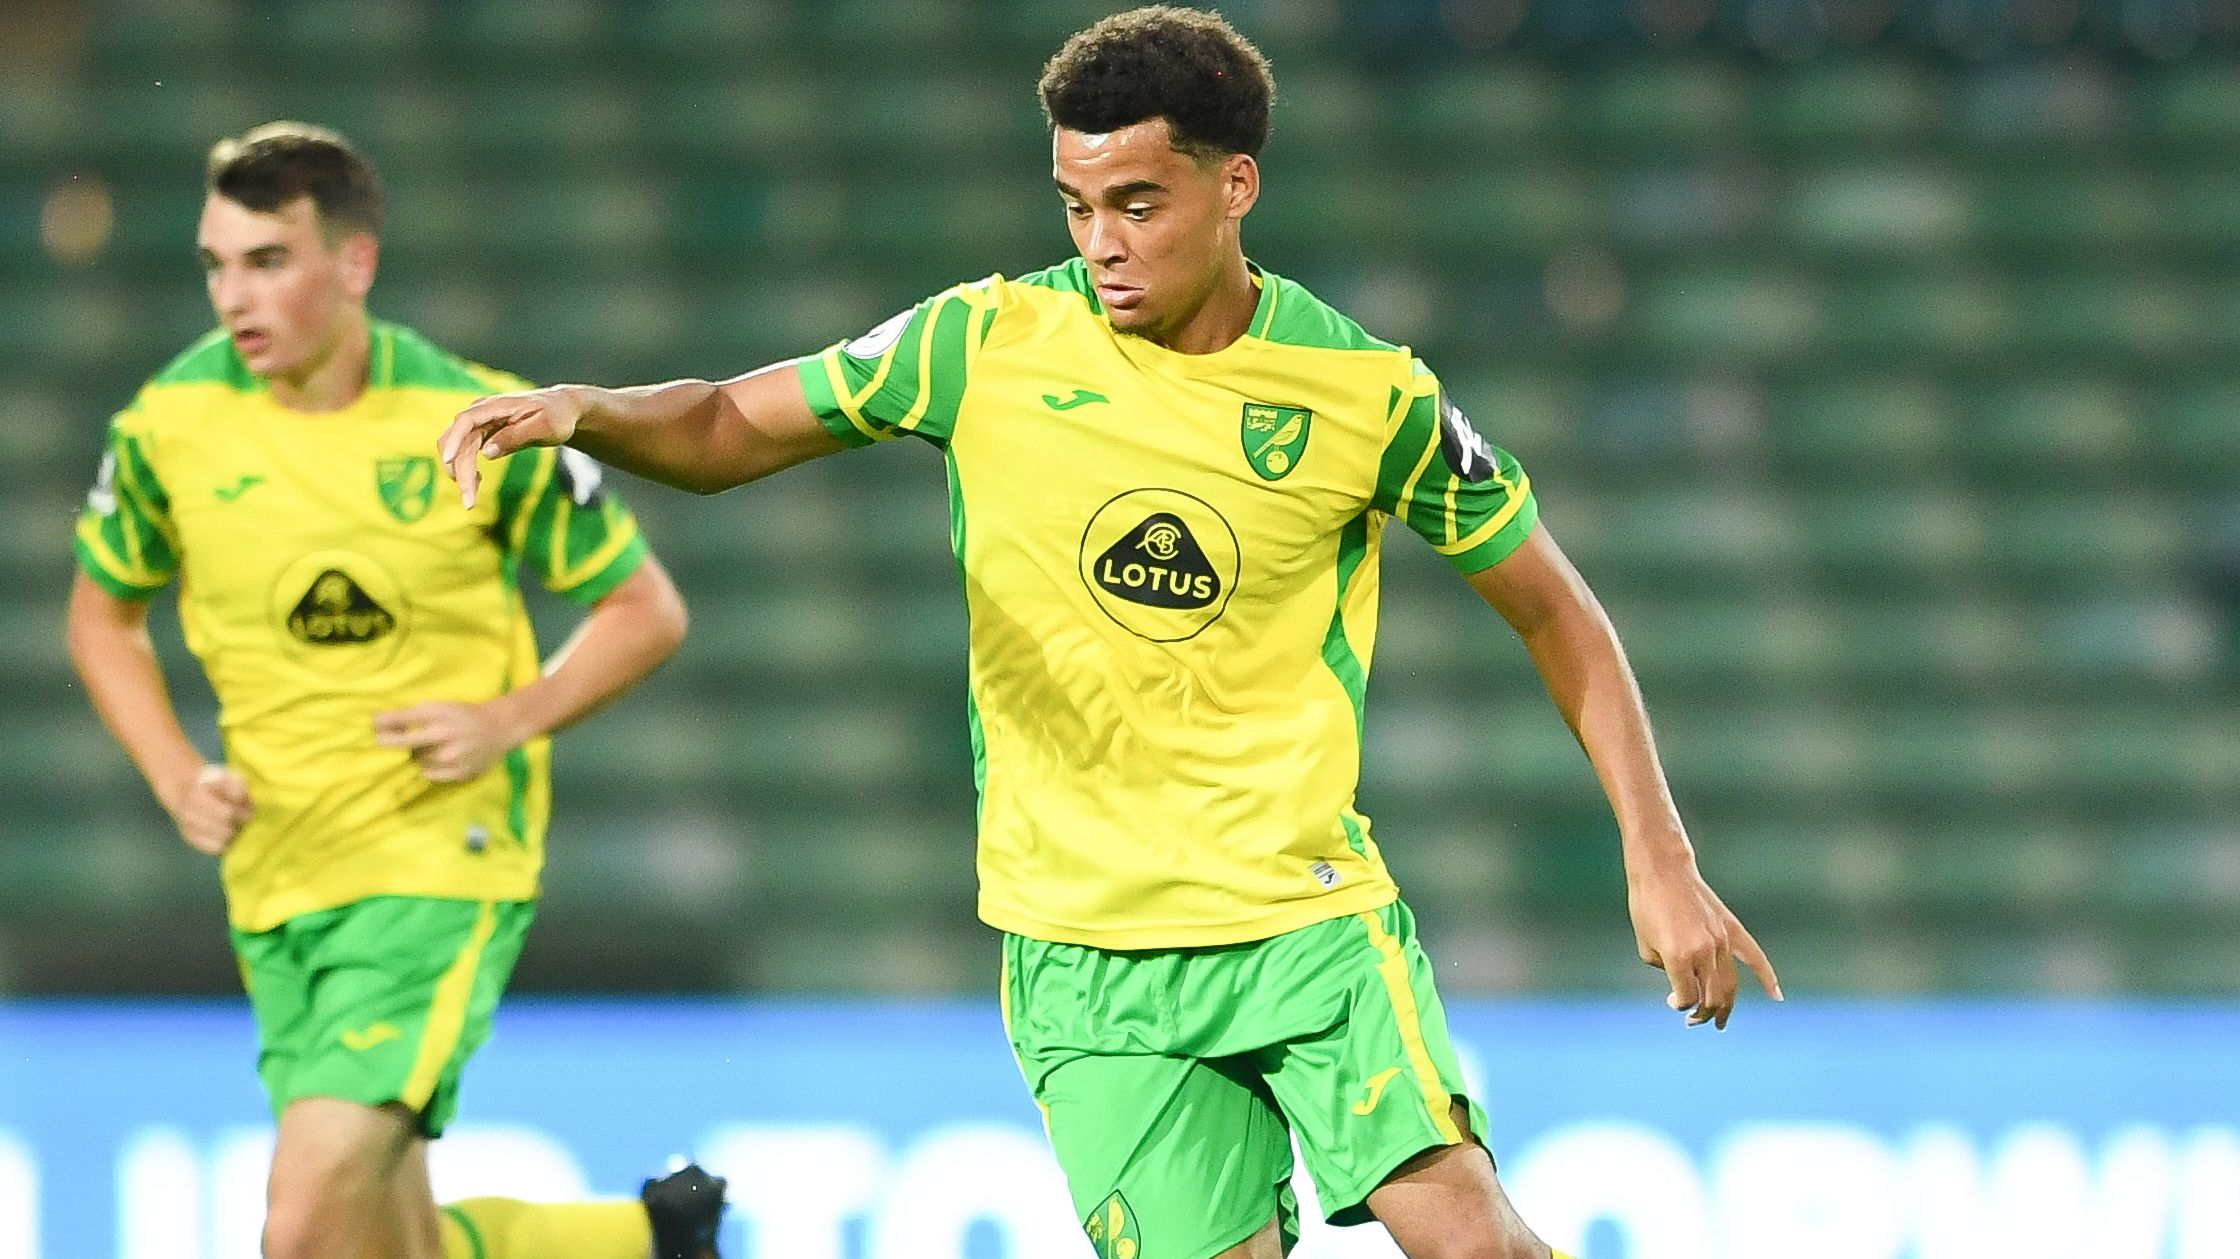 under-23s-in-premier-league-cup-action-on-monday-against-reading